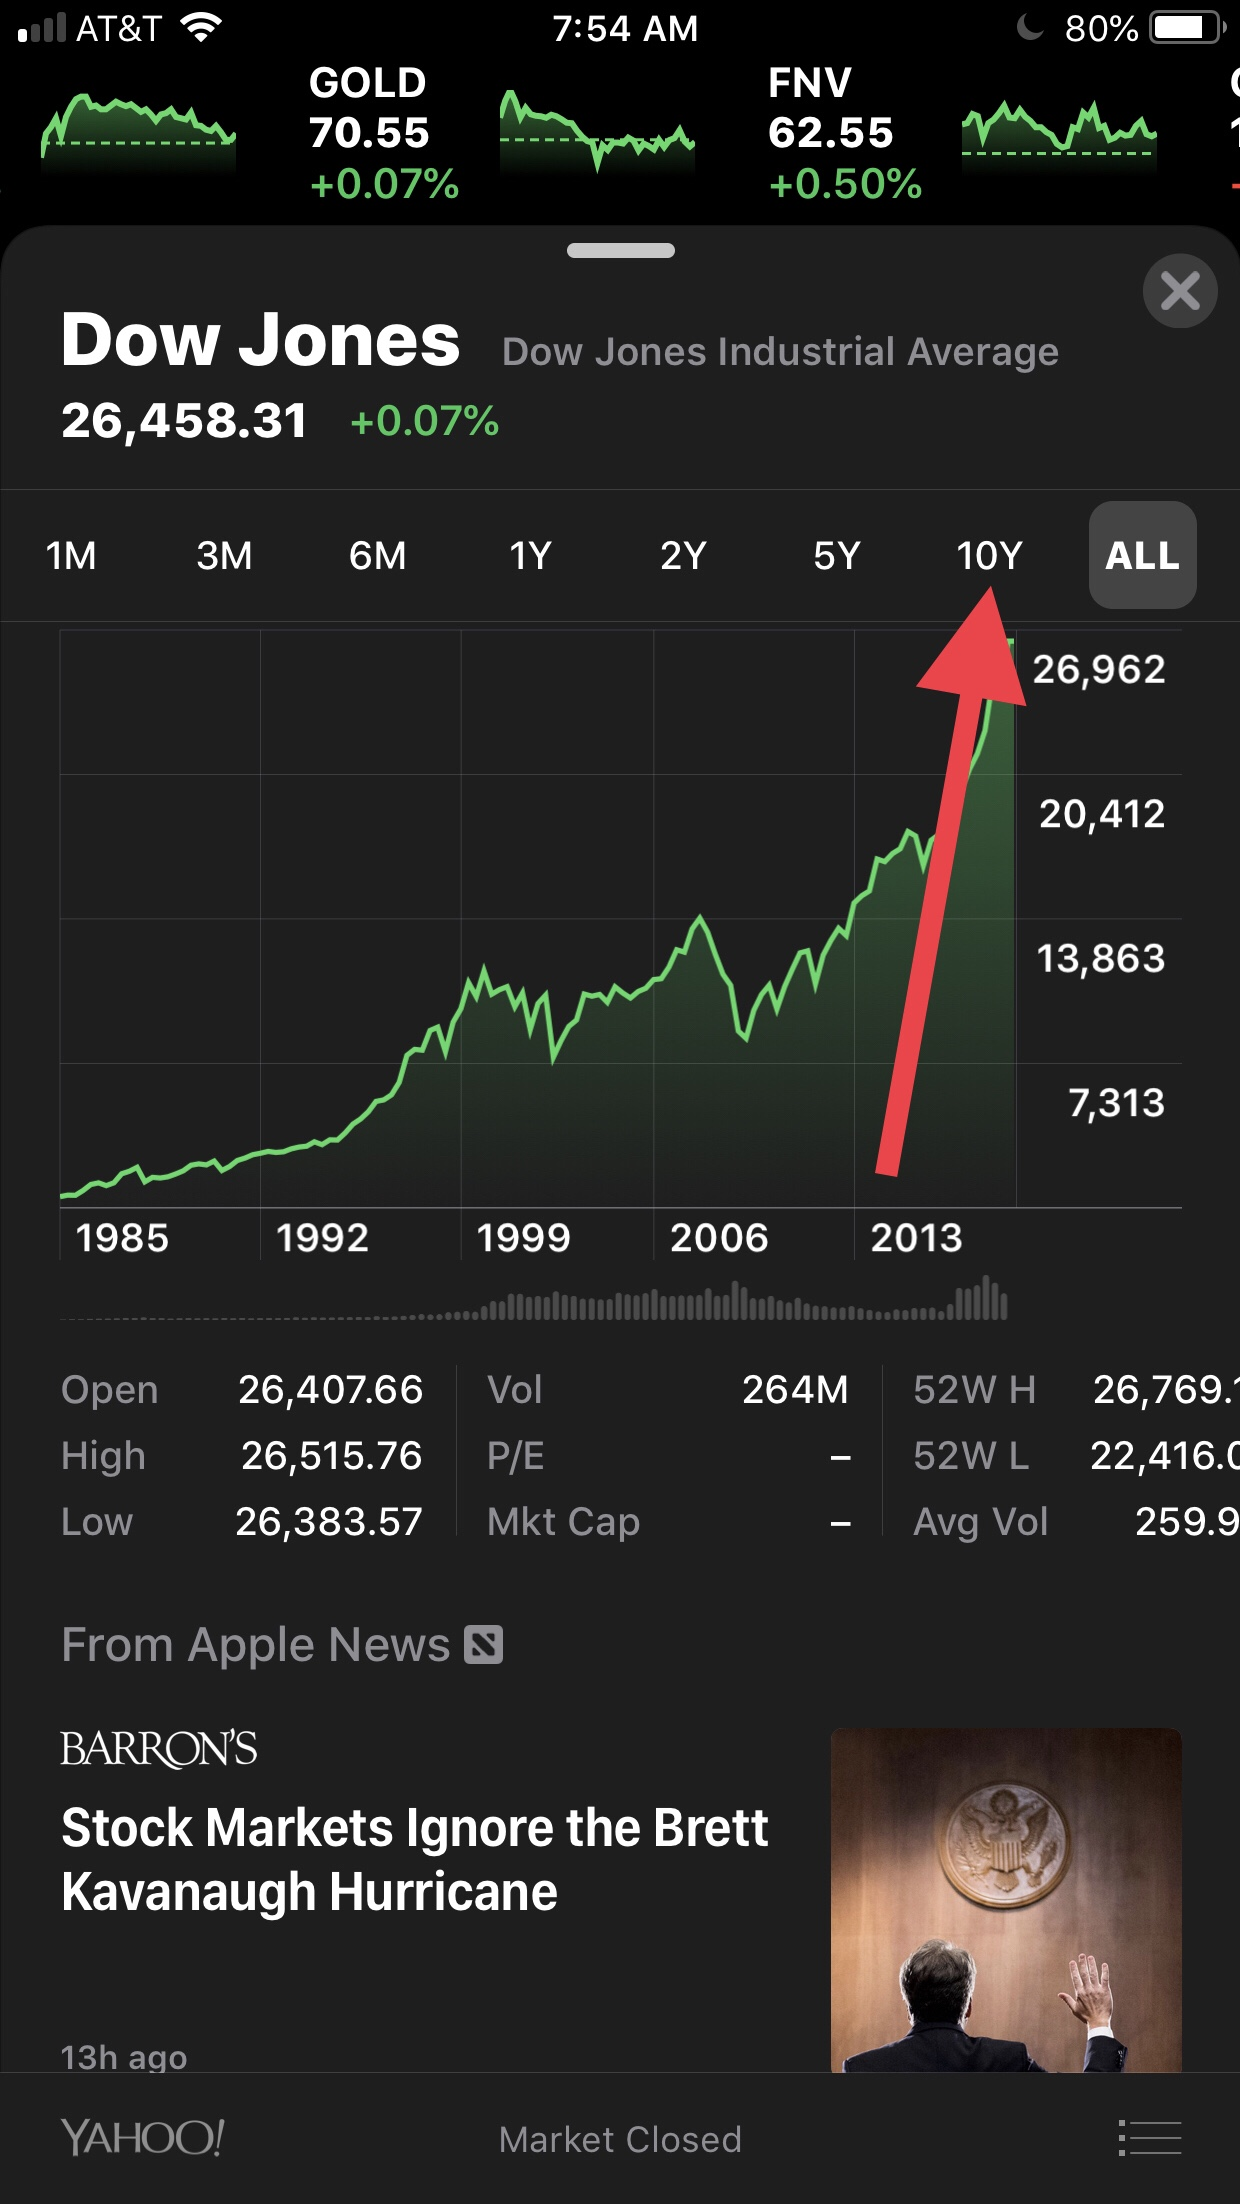 New iPhone iOS 12 stocks app reveal 10 year and ALL range